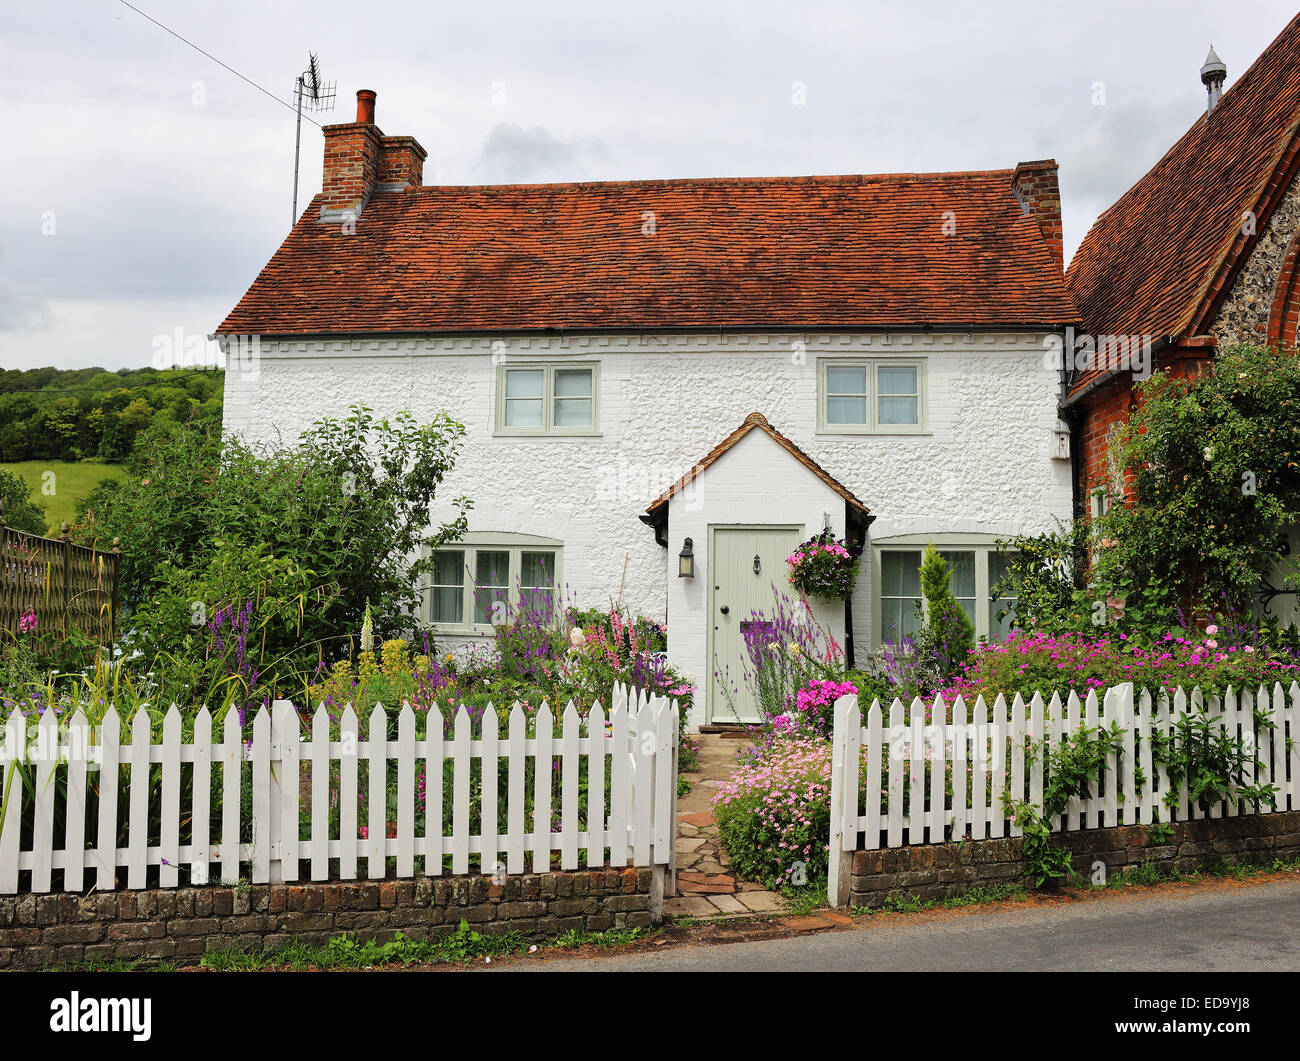 Traditional whitewashed English rural Stone Cottage and garden with picket fence - Stock Image